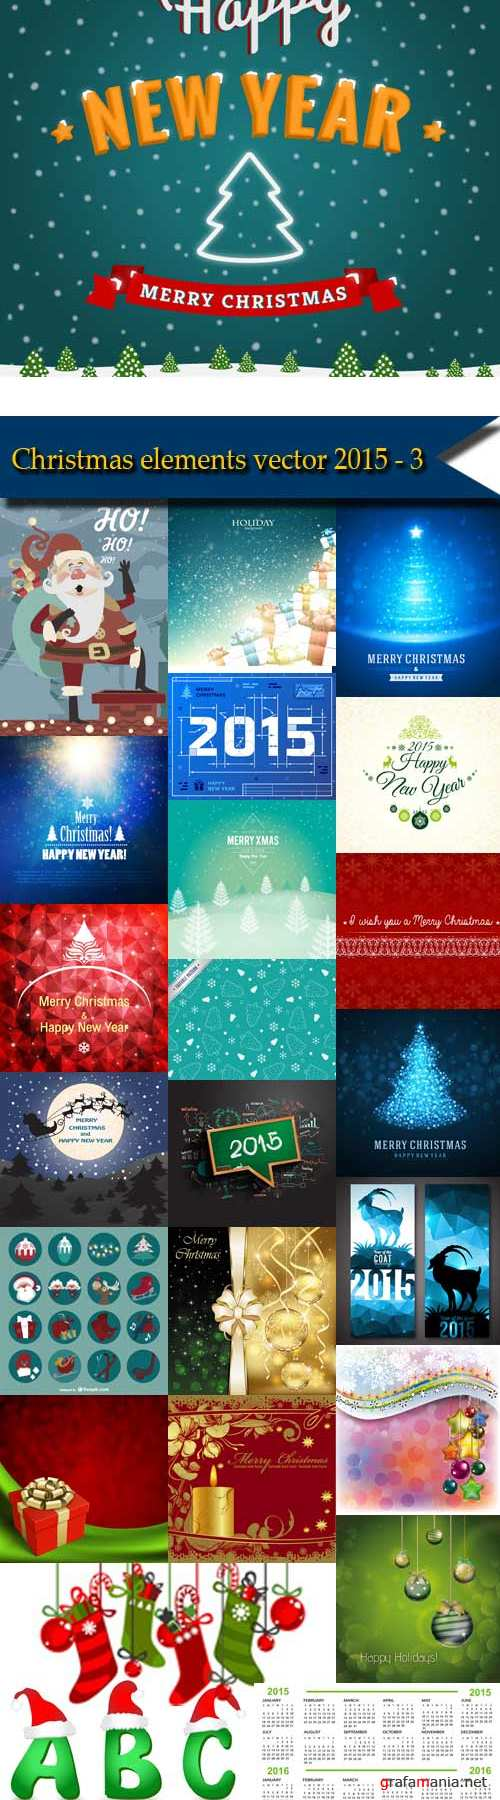 Christmas elements vector 2015 - 3